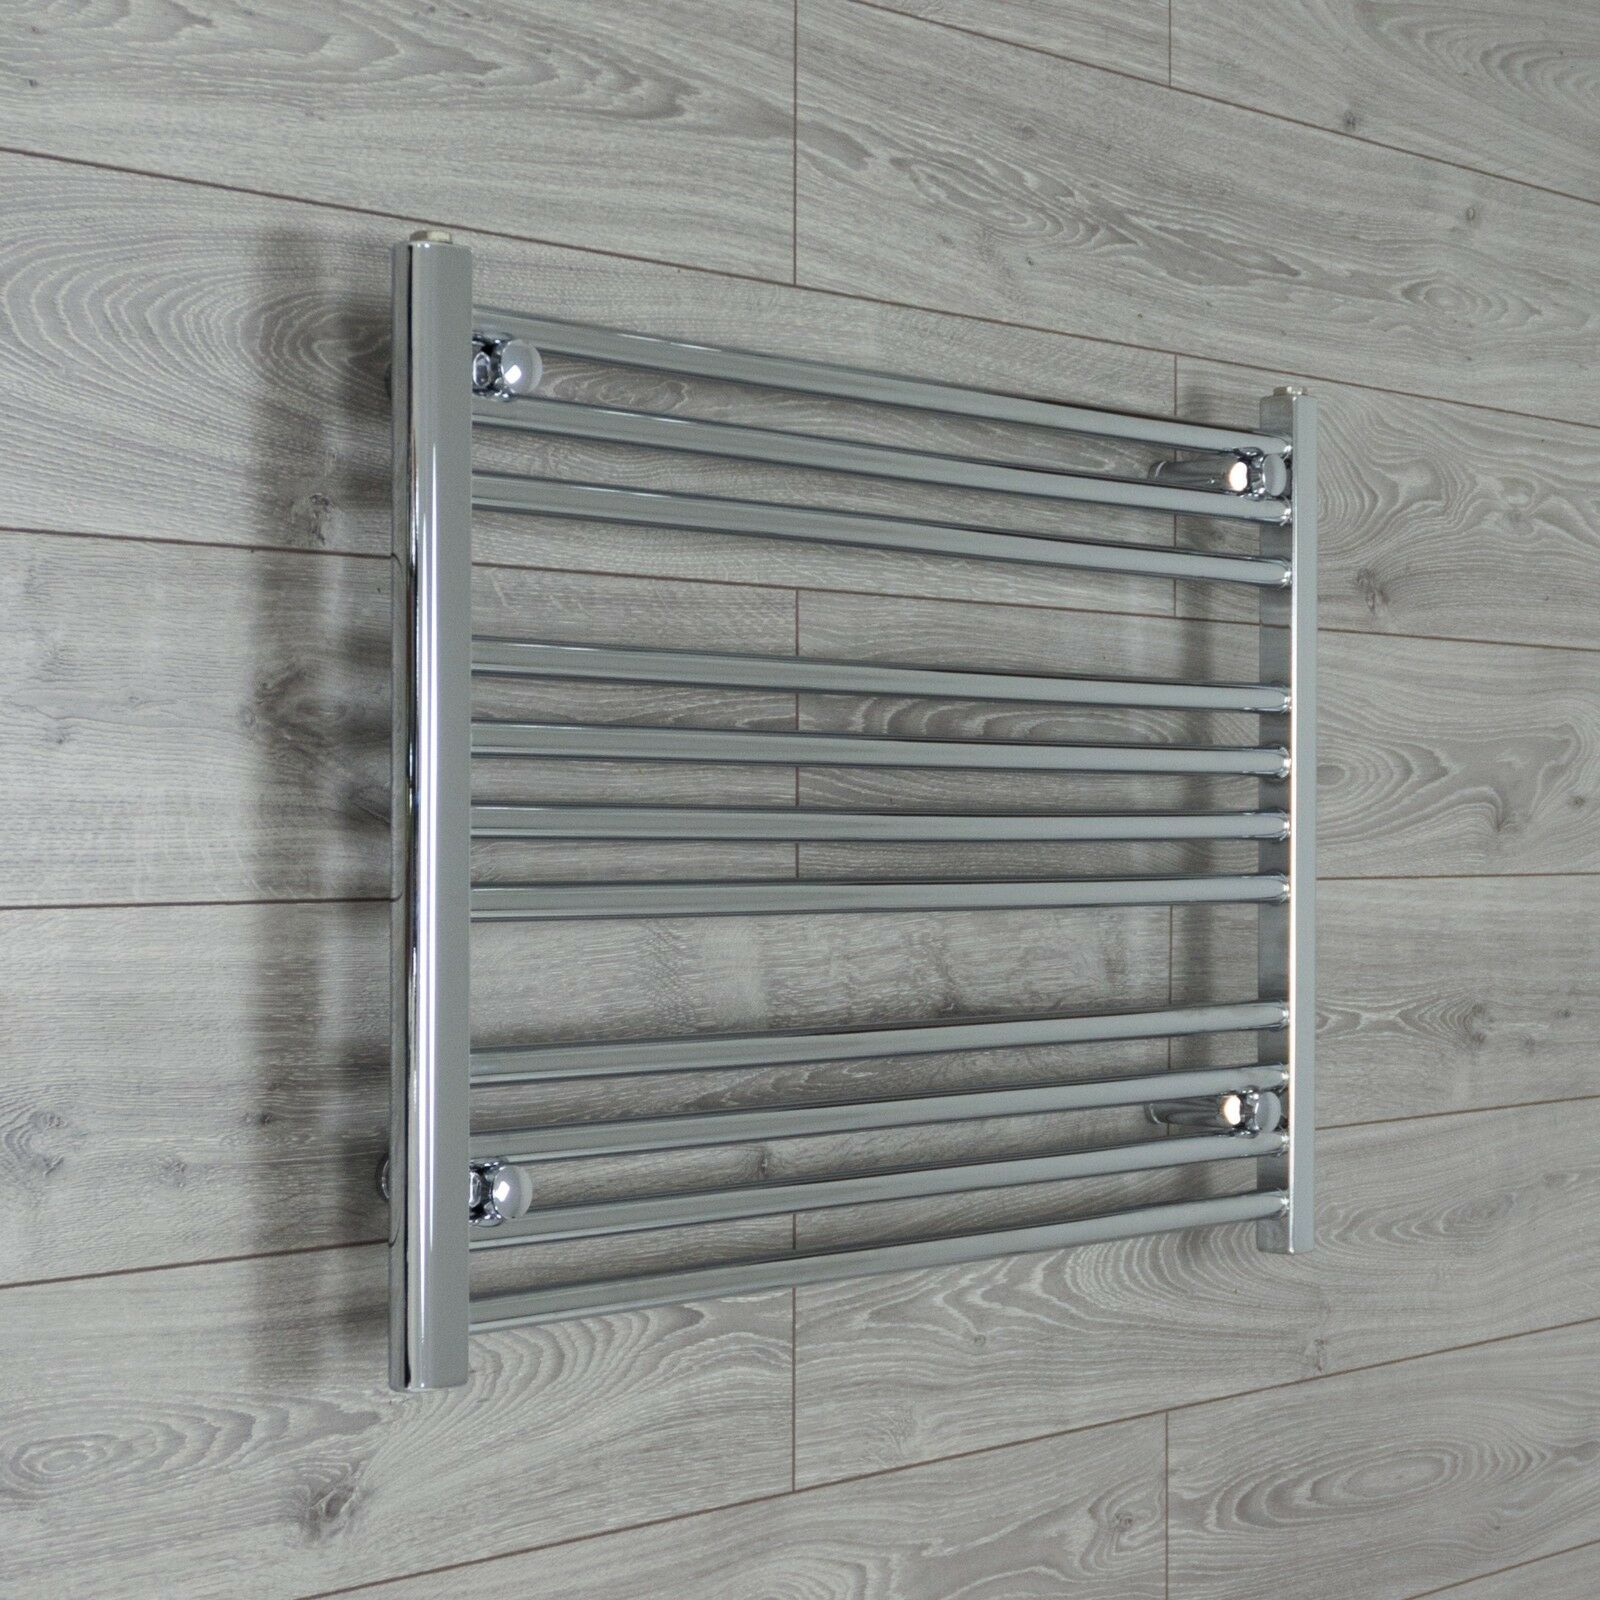 750mm Wide 600mm High Designer Chrome Heated Heated Heated Towel Rail Radiator Bathroom Rad 69233d